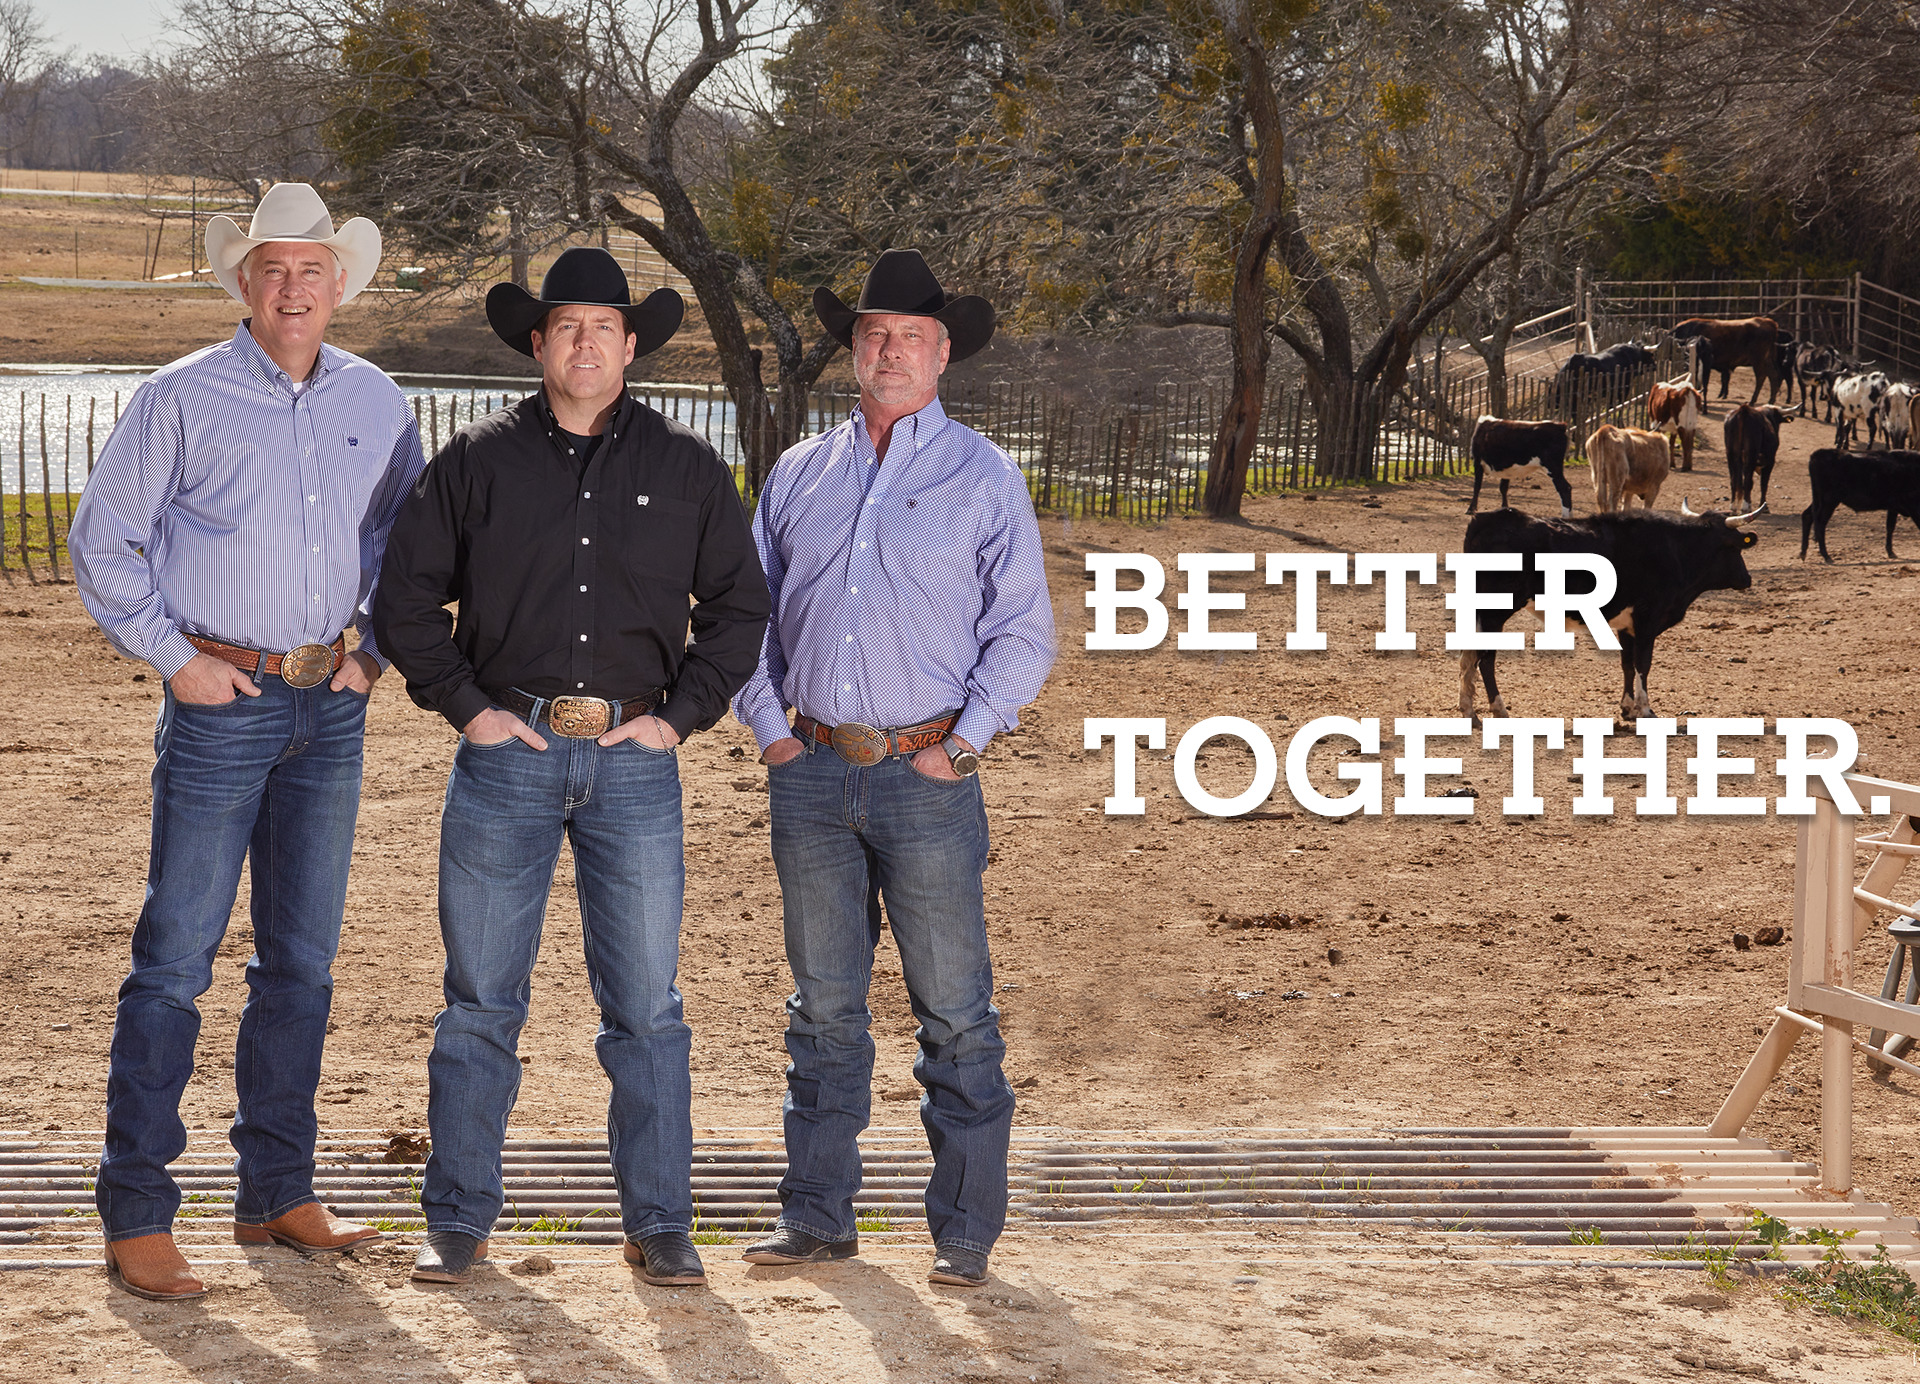 Better Together 1920 x 1384